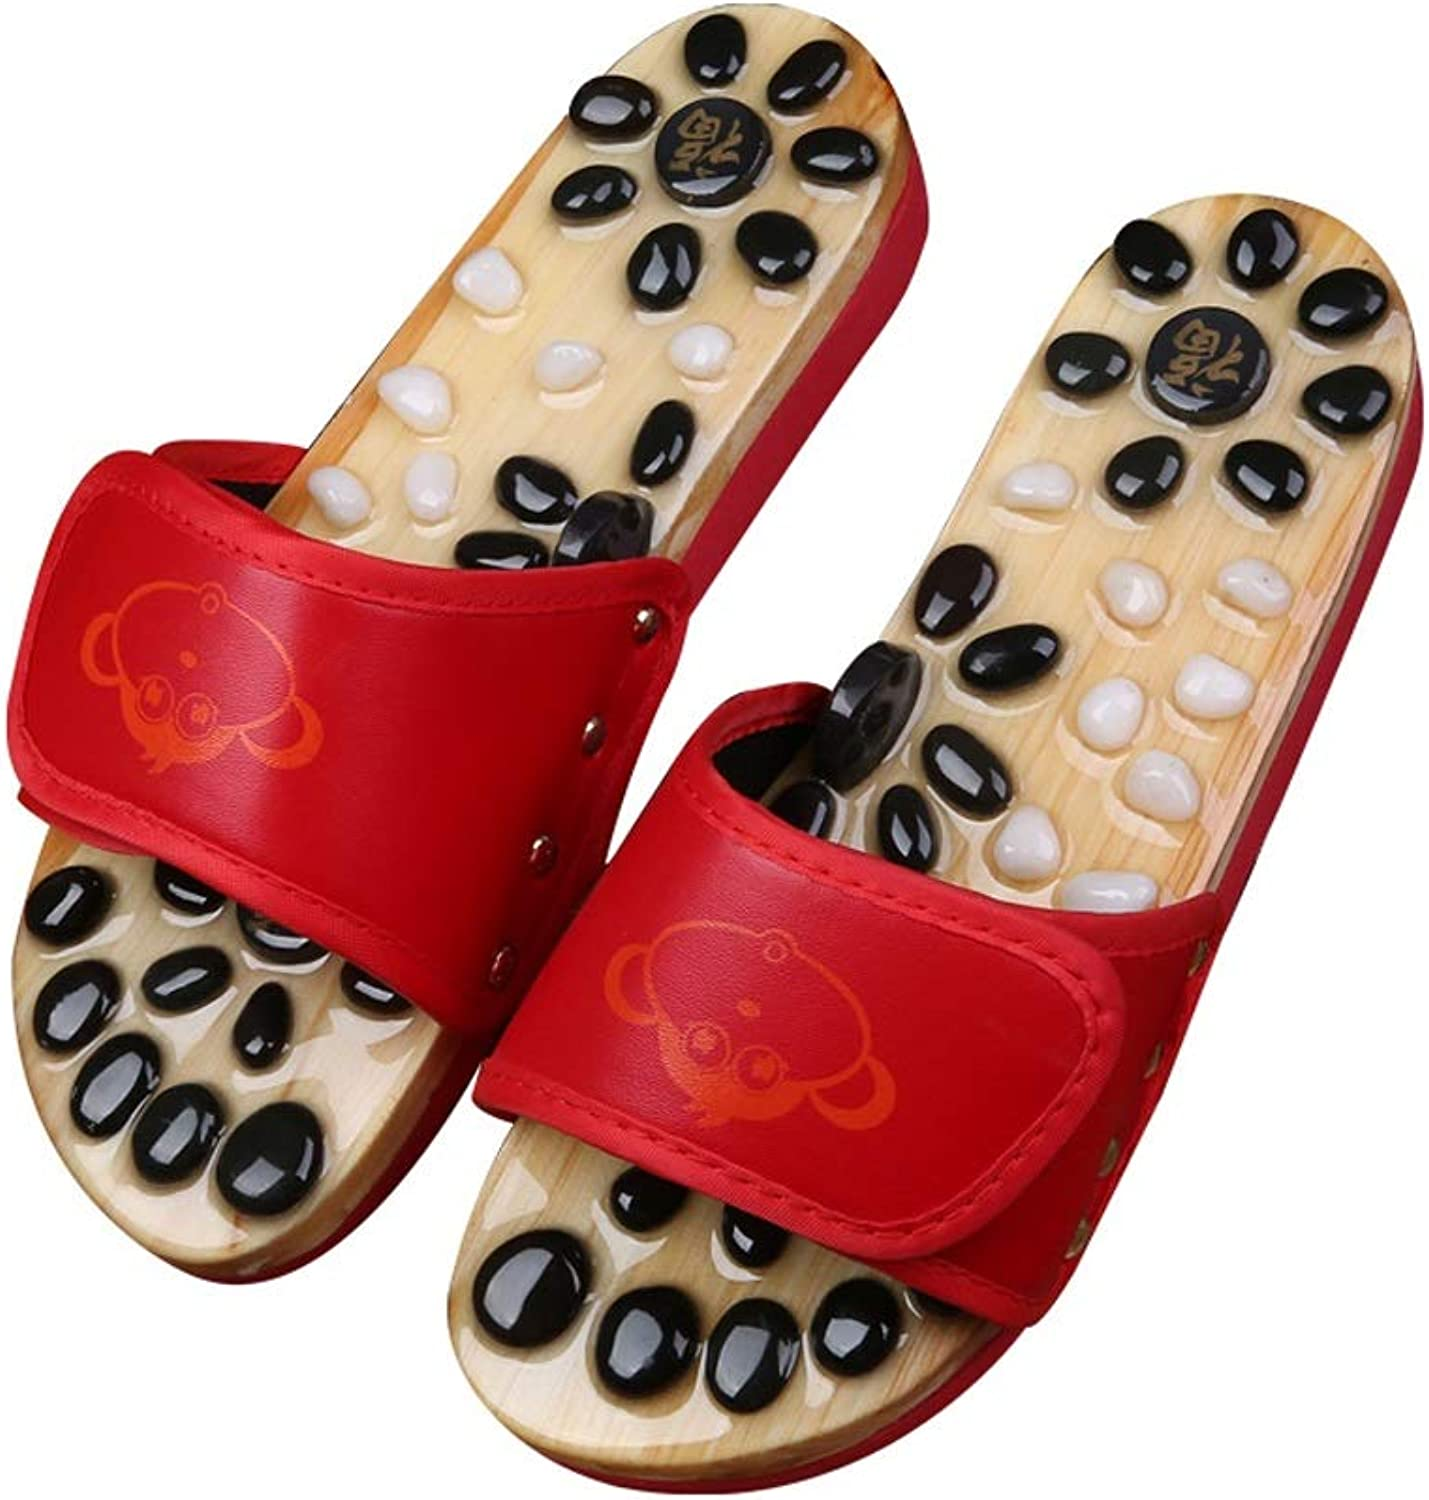 Xiao Jian Home Pebbles Foot Massage Slippers Acupressure Pedicure shoes Couple Bathroom Slip Indoor Sandals and Slippers Men and Women Summer flip Flop (color   C37-38)